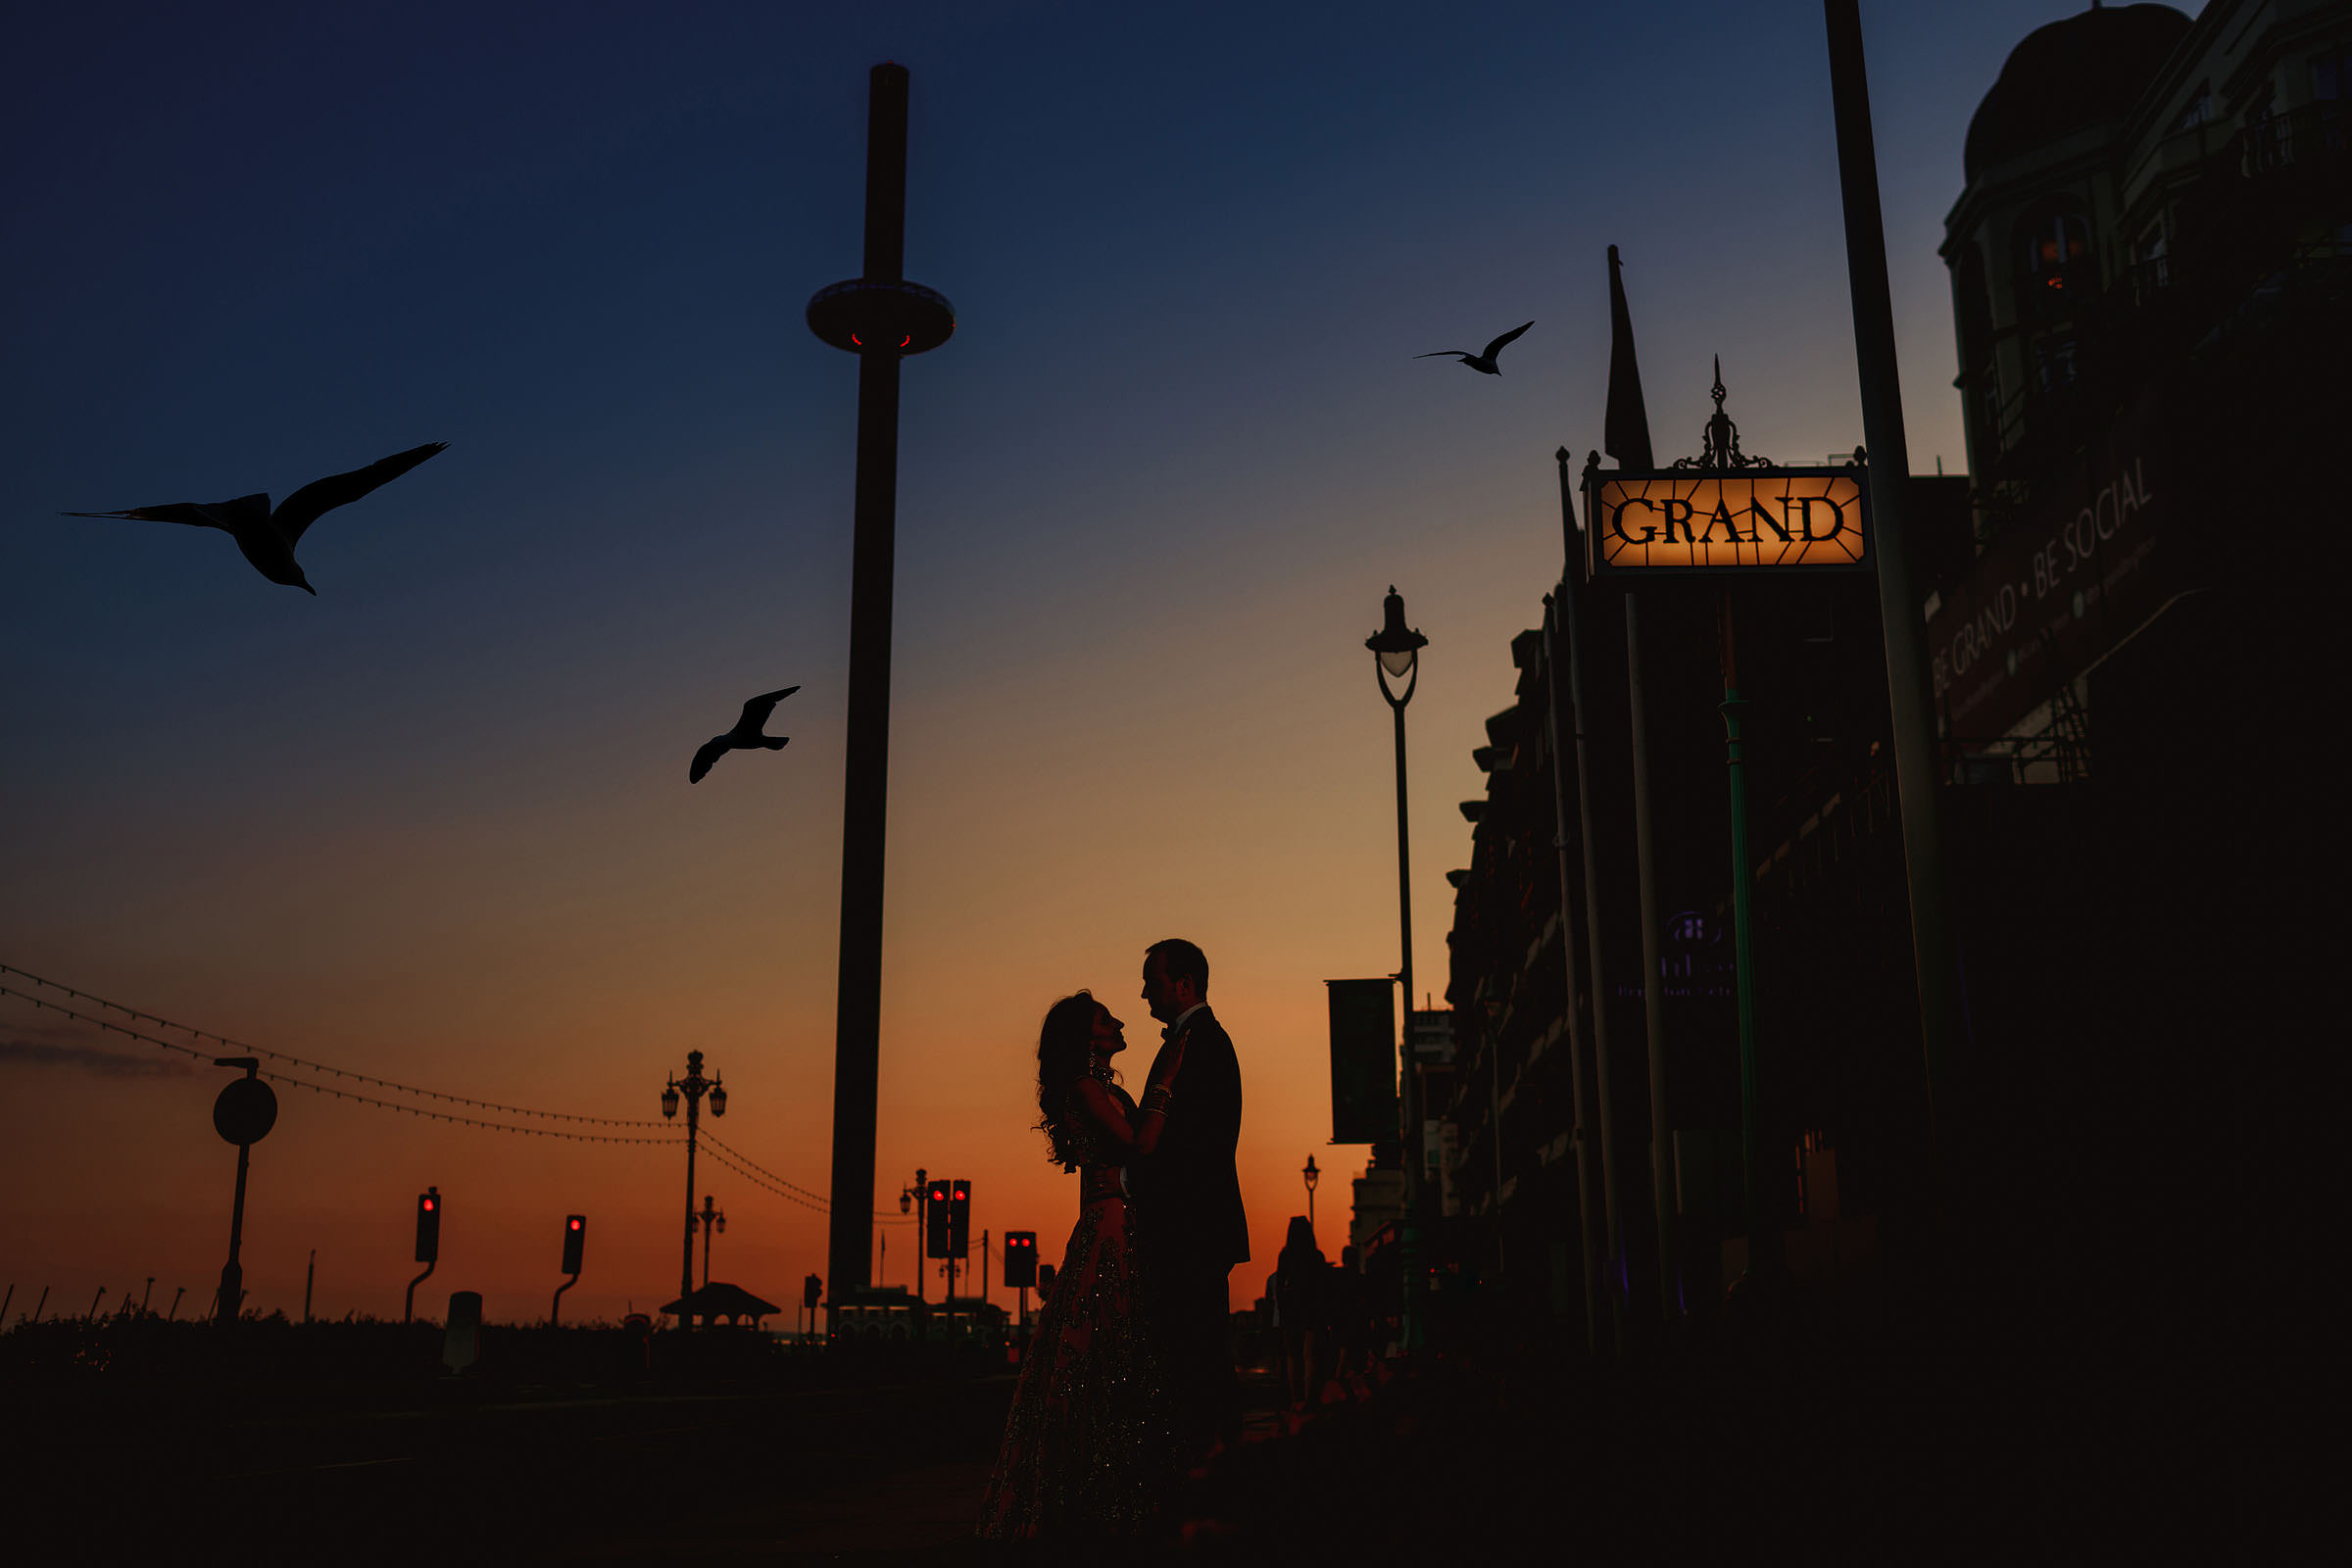 Sunset silhouette couple with grand sign - Photo by F5 Photography